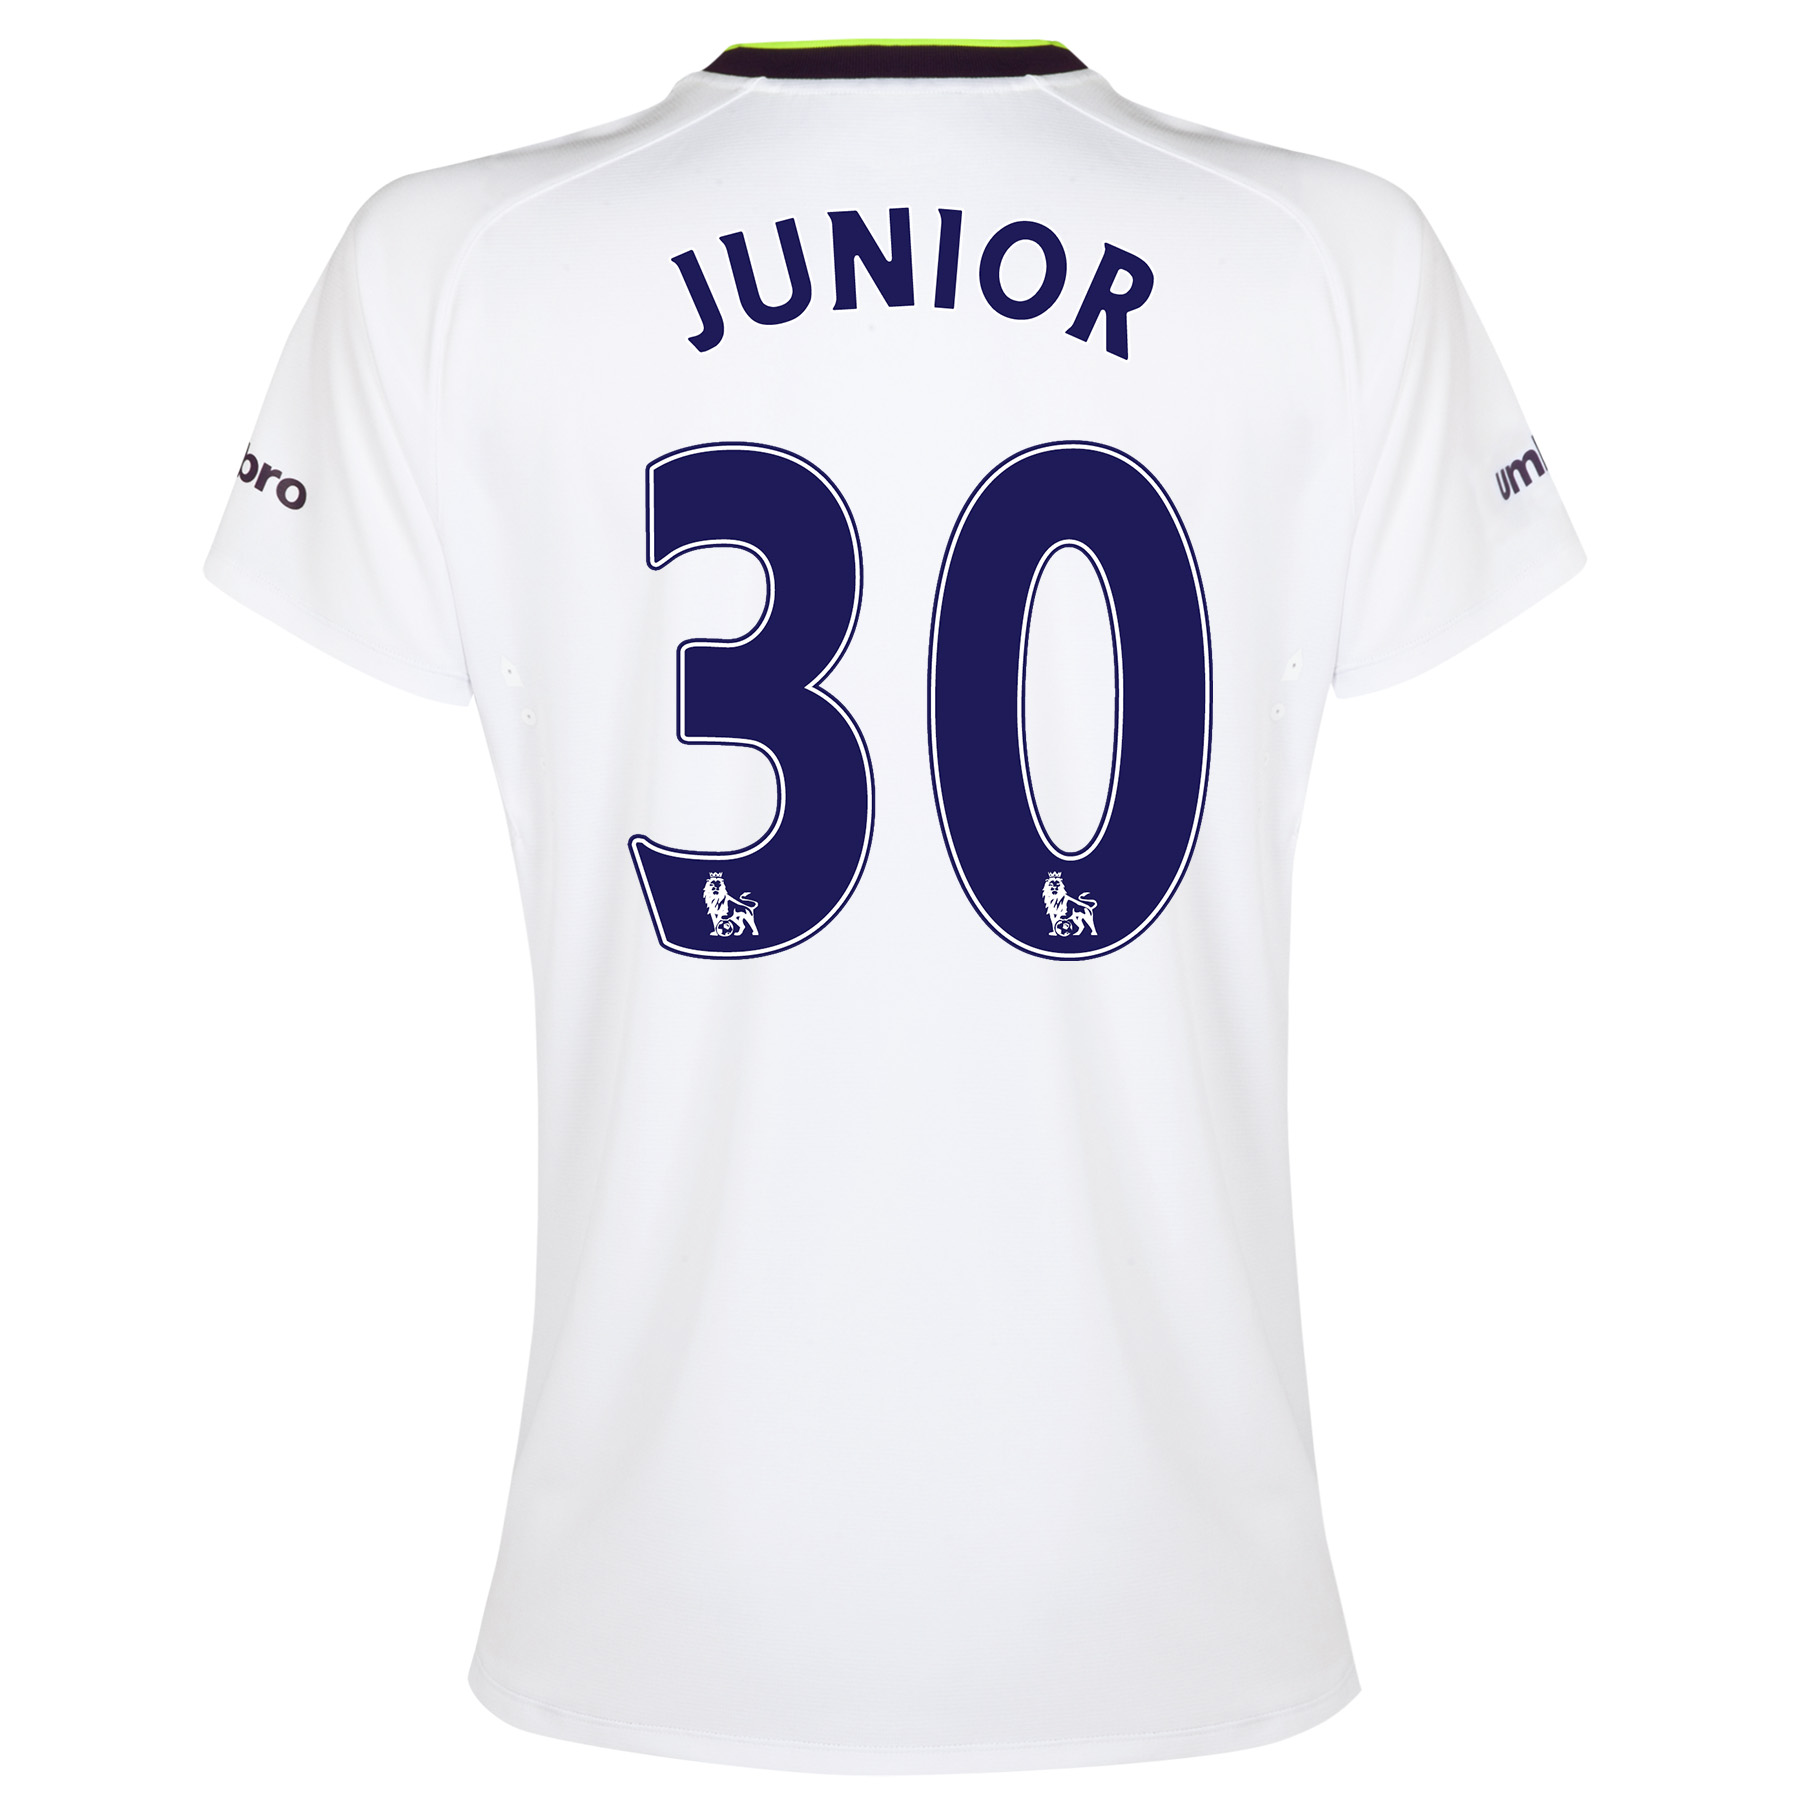 Everton SS 3rd Shirt 2014/15- Womens with Junior 30 printing